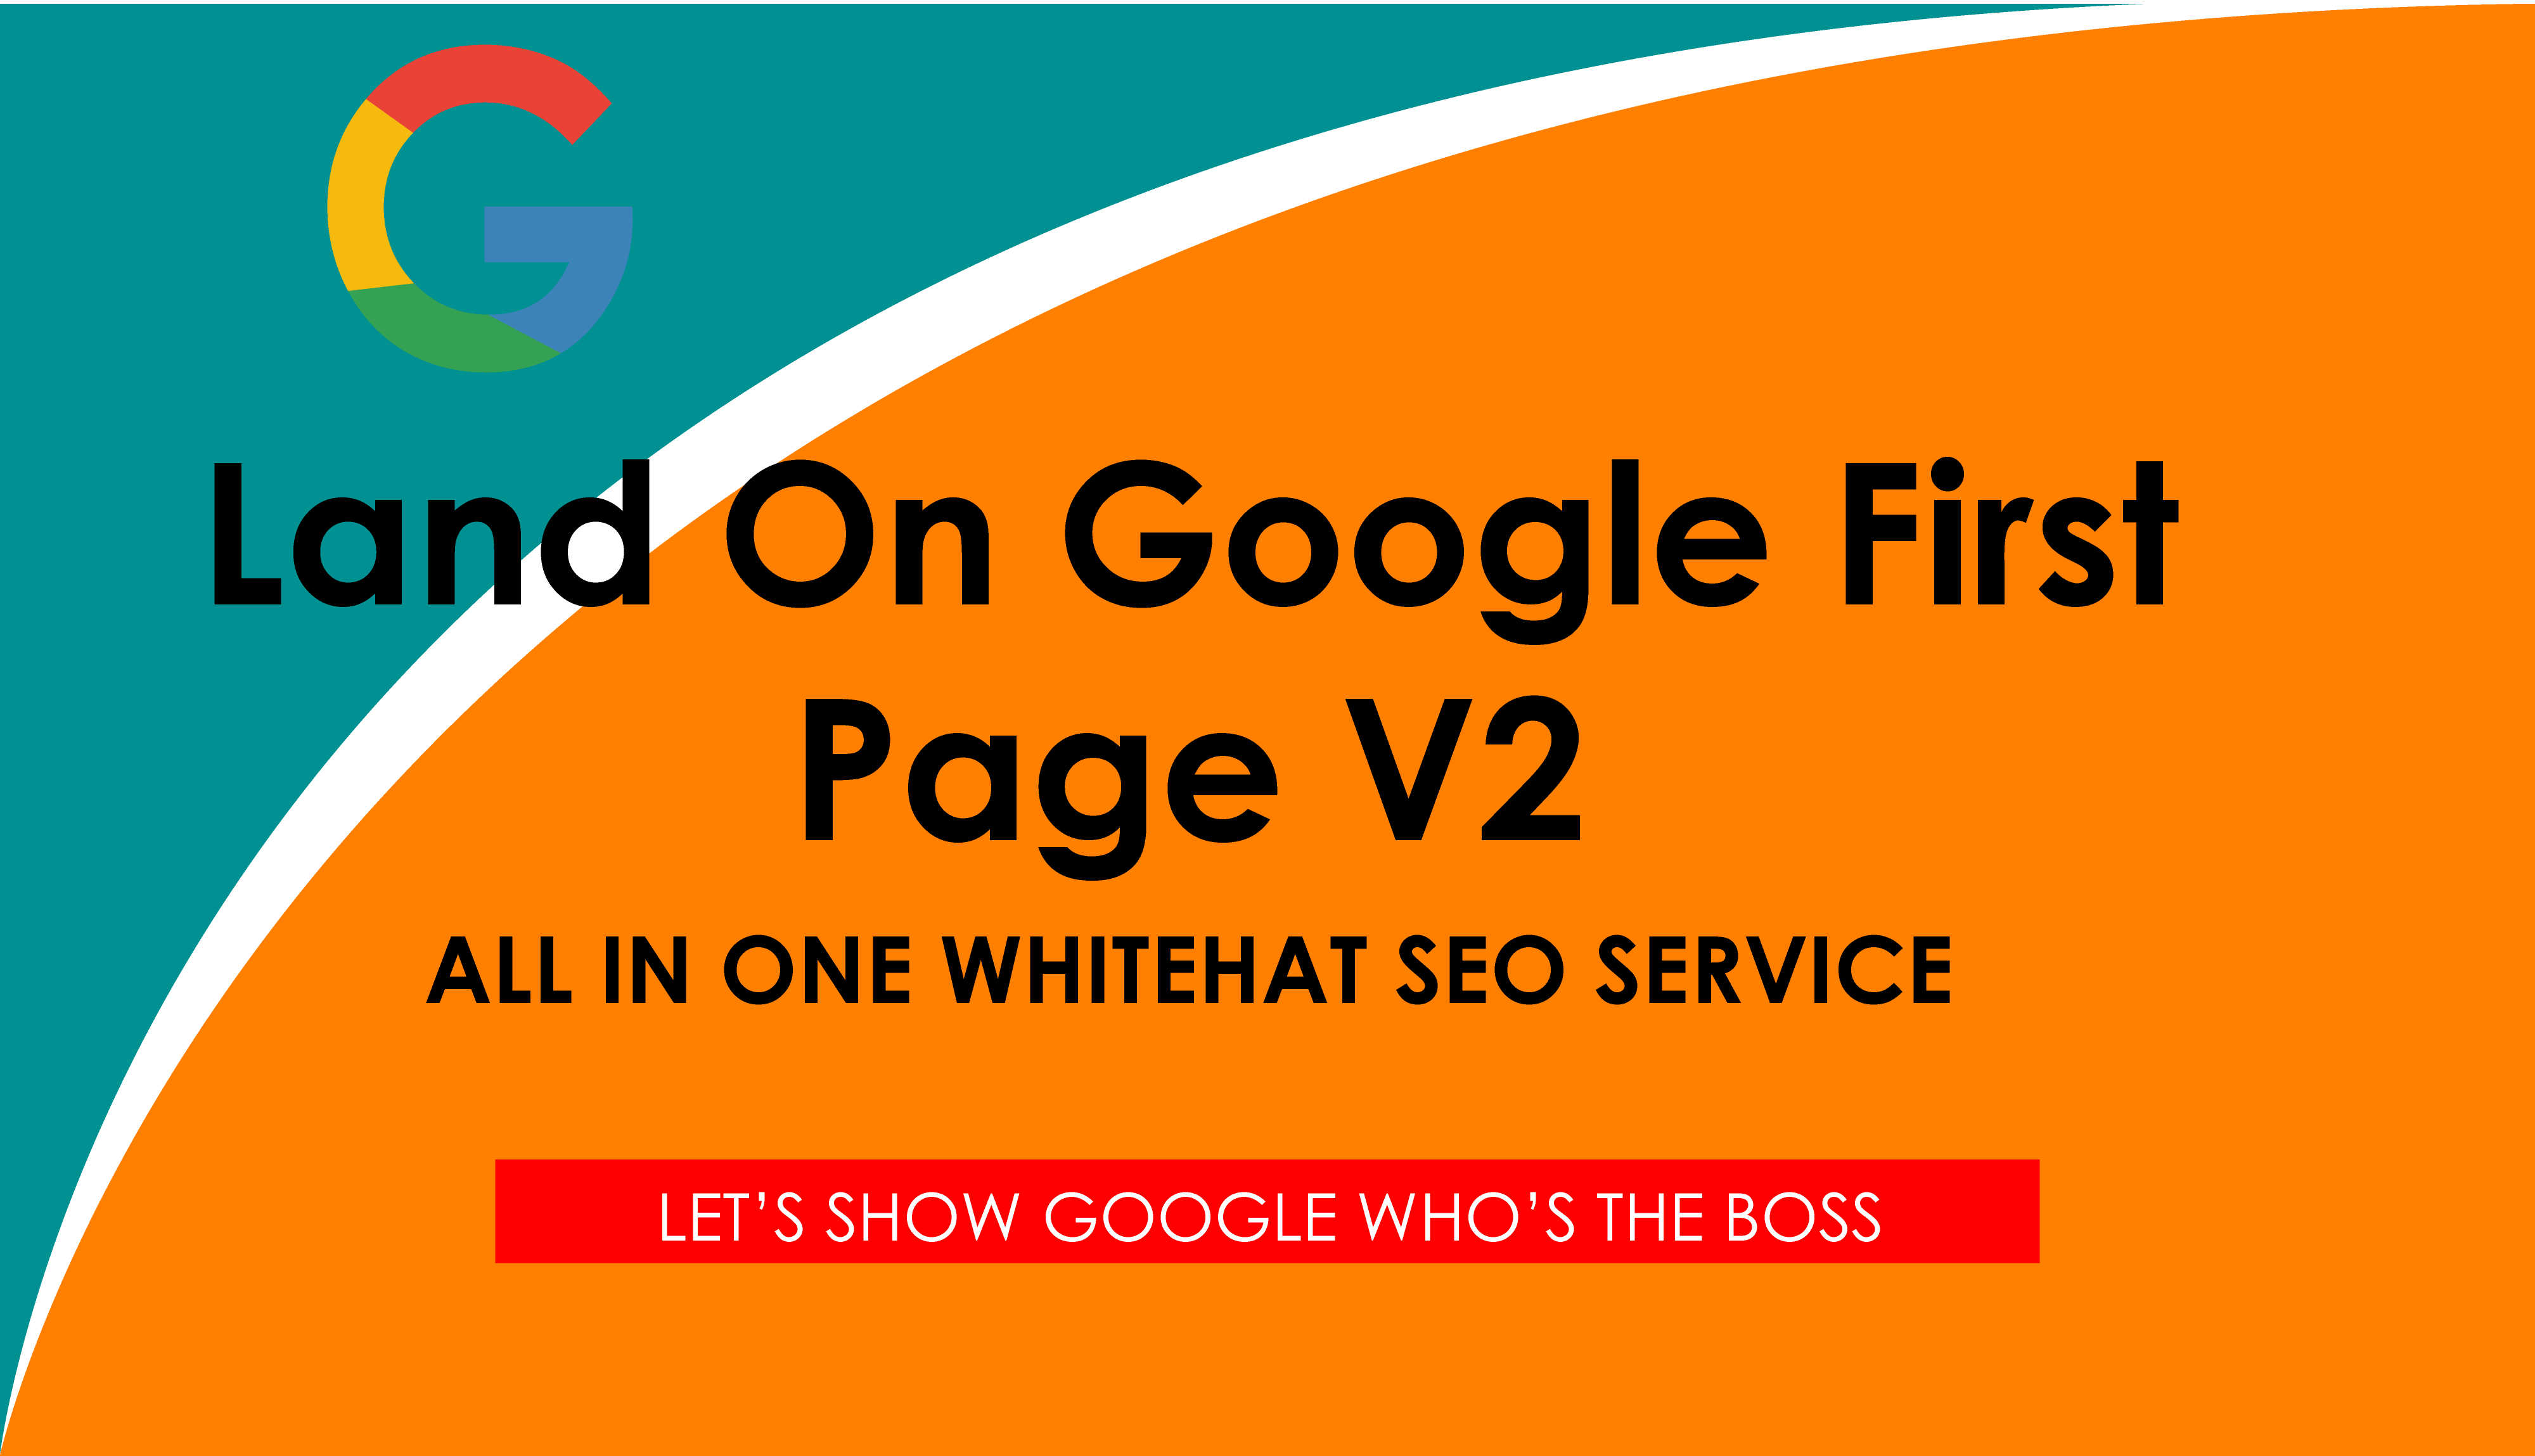 Land on Google 1st page V2 All In One WHITEHAT SEO Service